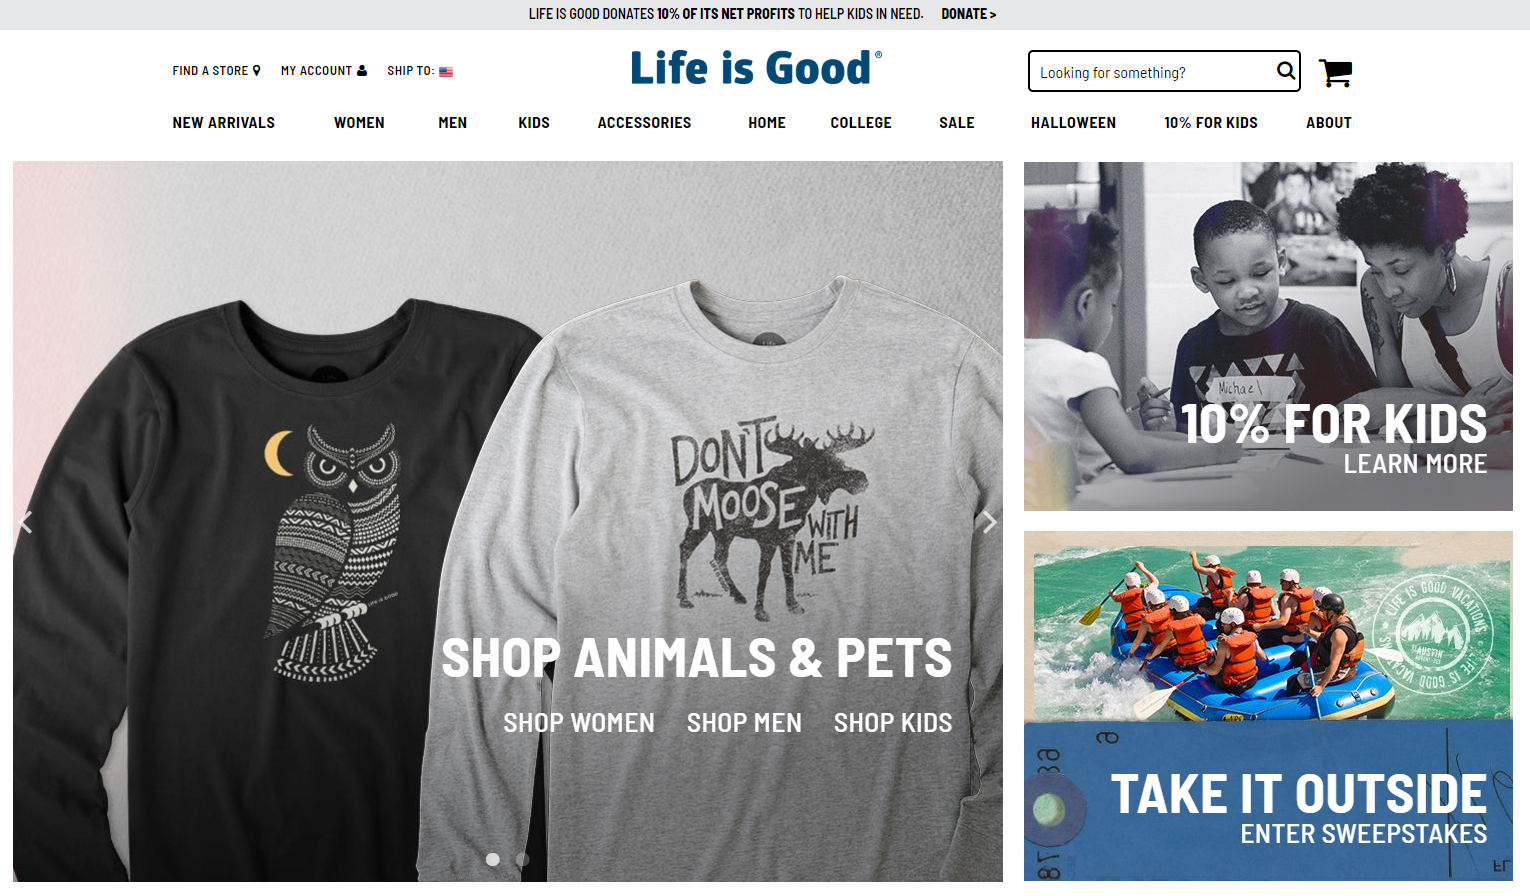 life-is-good-shirts-website